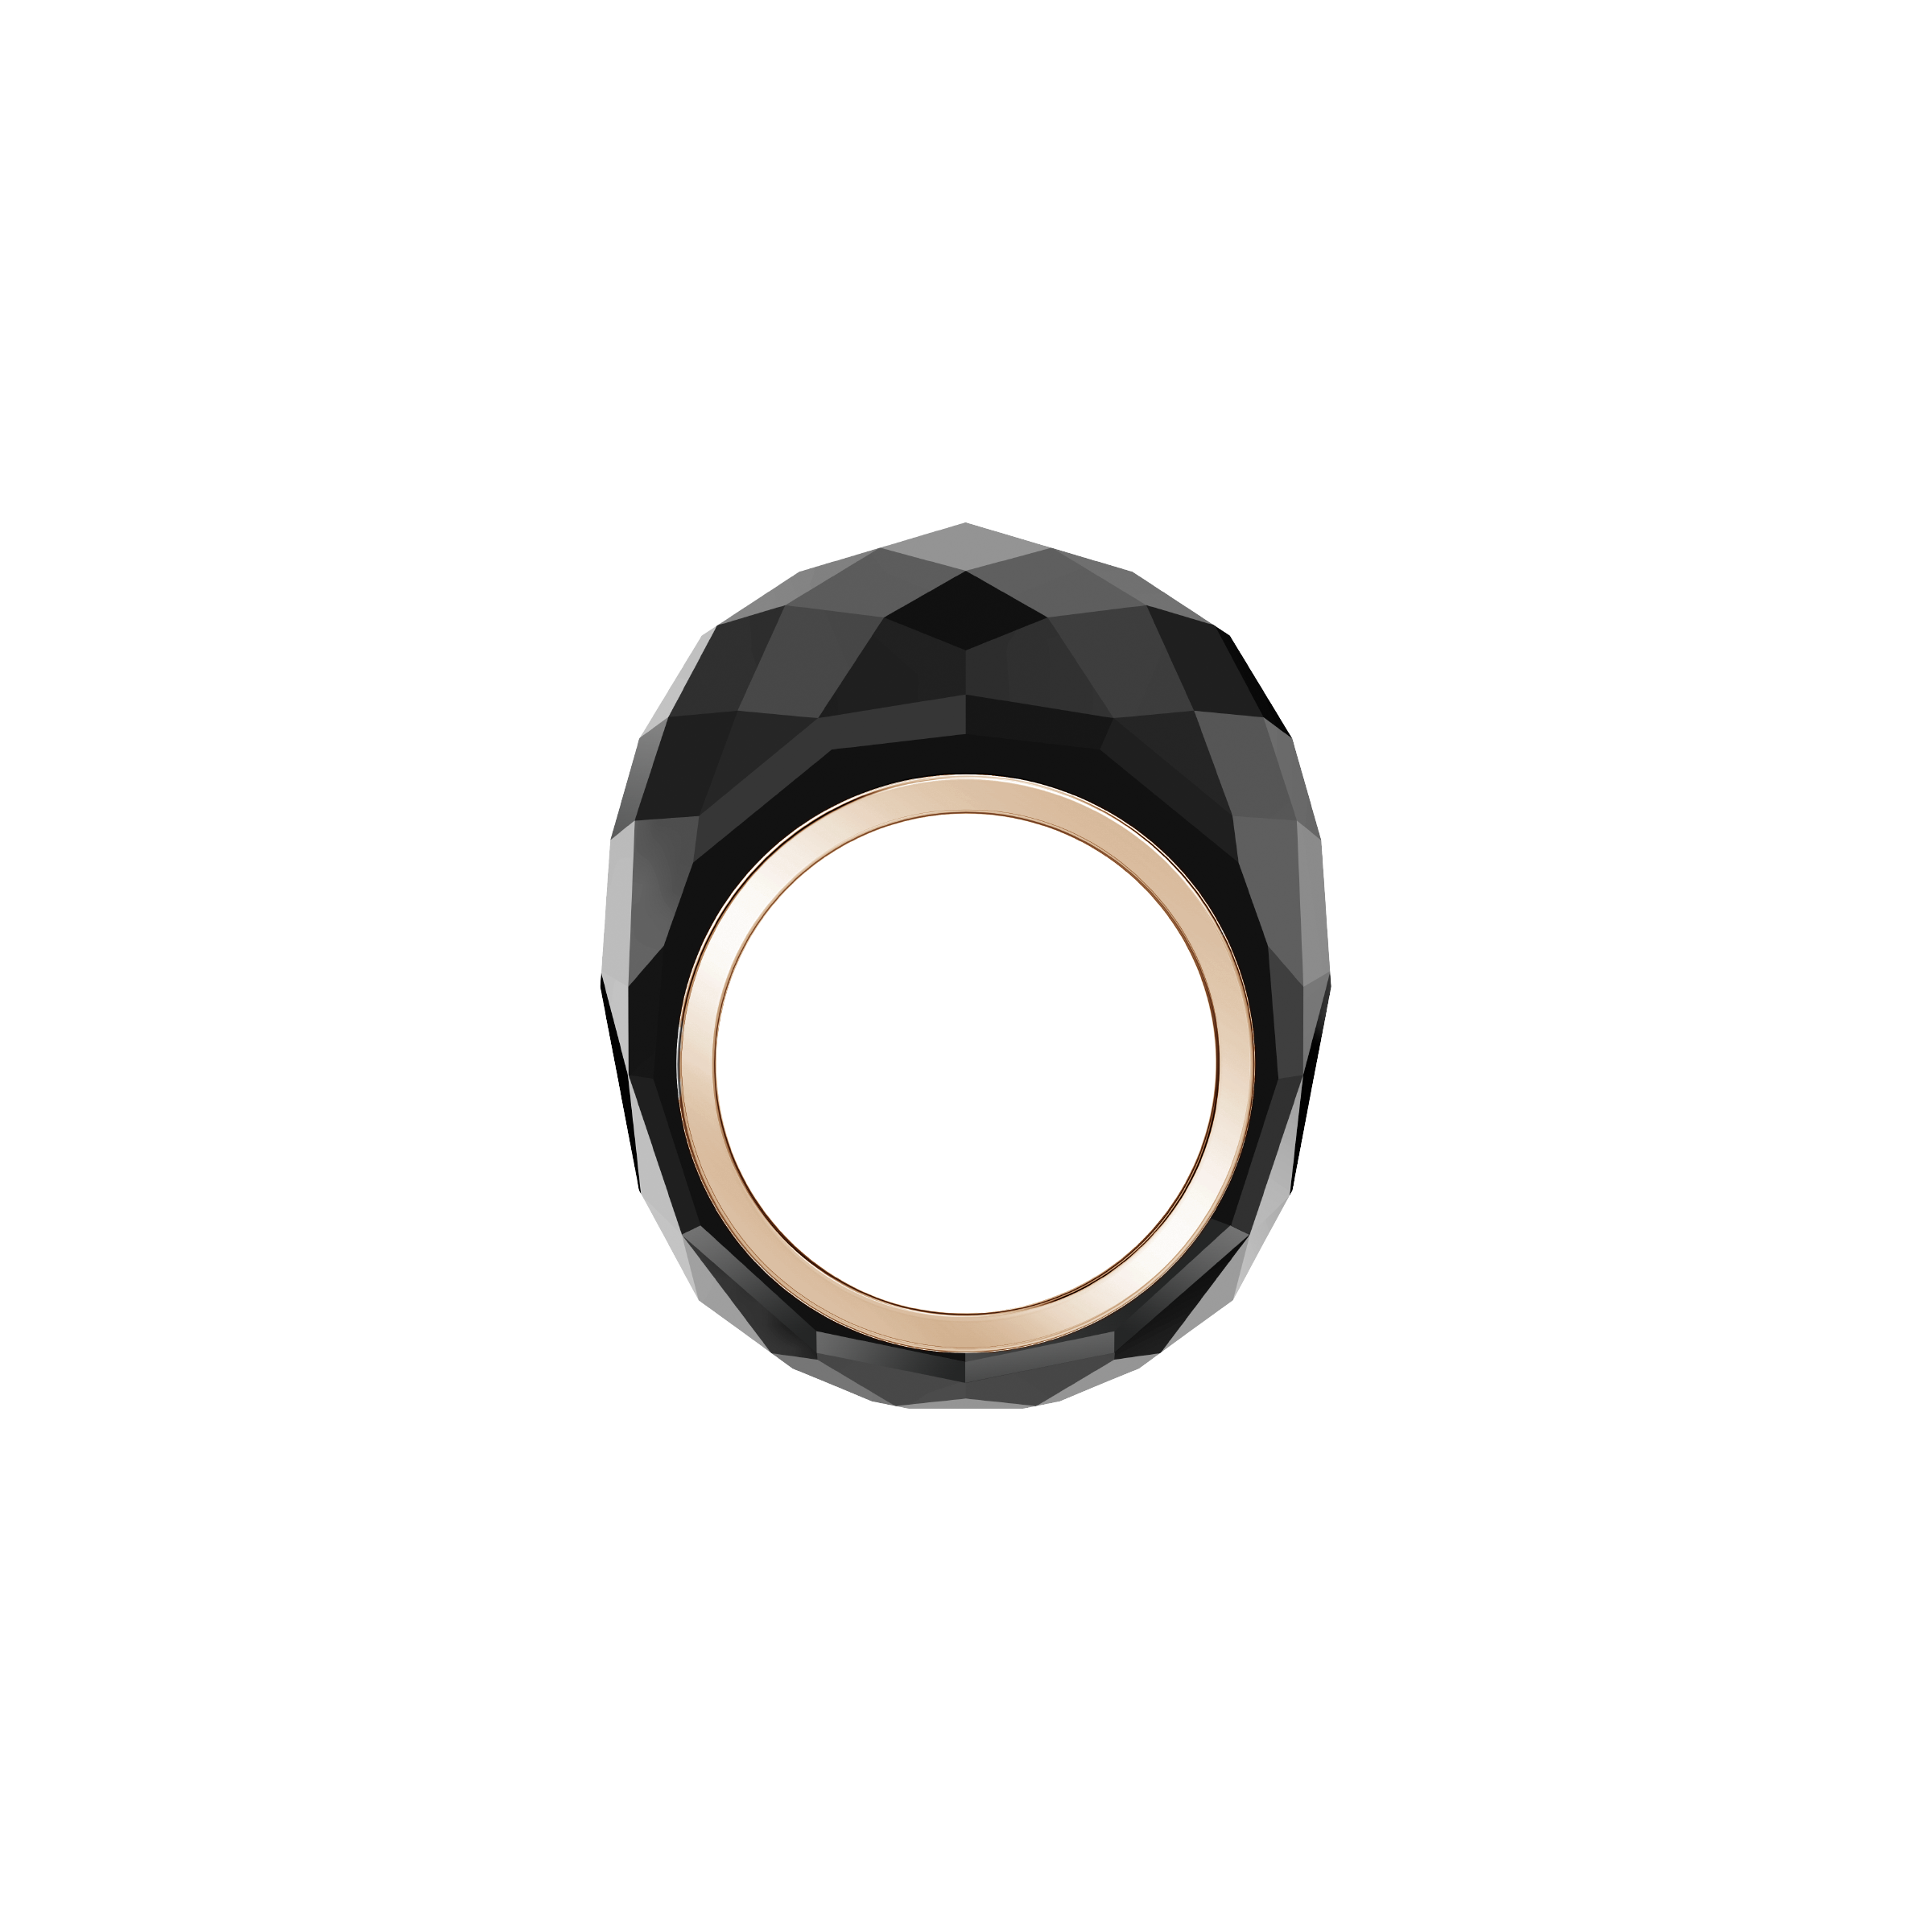 Nirvana Ring, Black, Rose-gold tone PVD